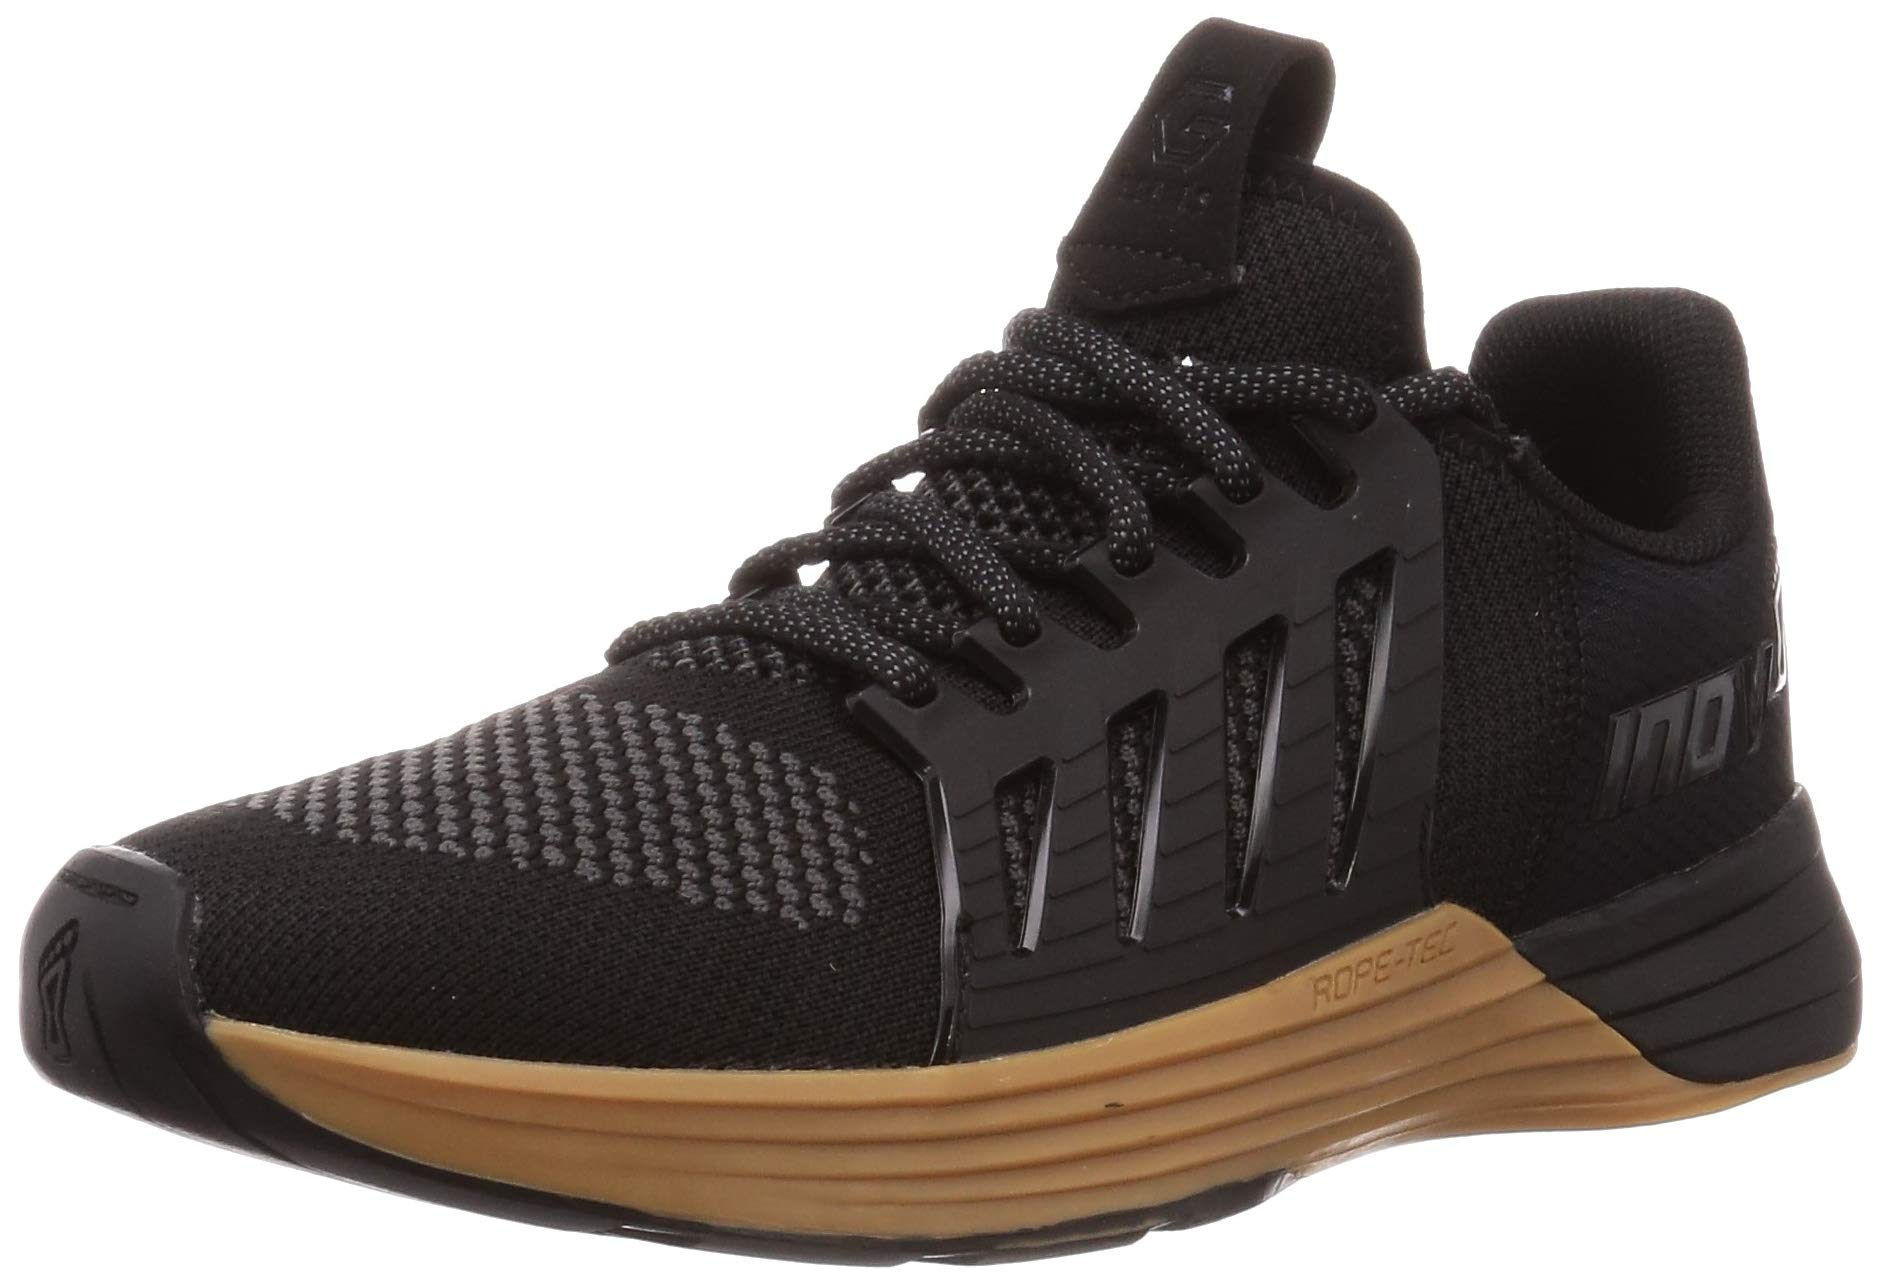 Inov-8 Womens F-Lite G 300 - Versatile Cross Training Shoes - Lifting Stabilizer